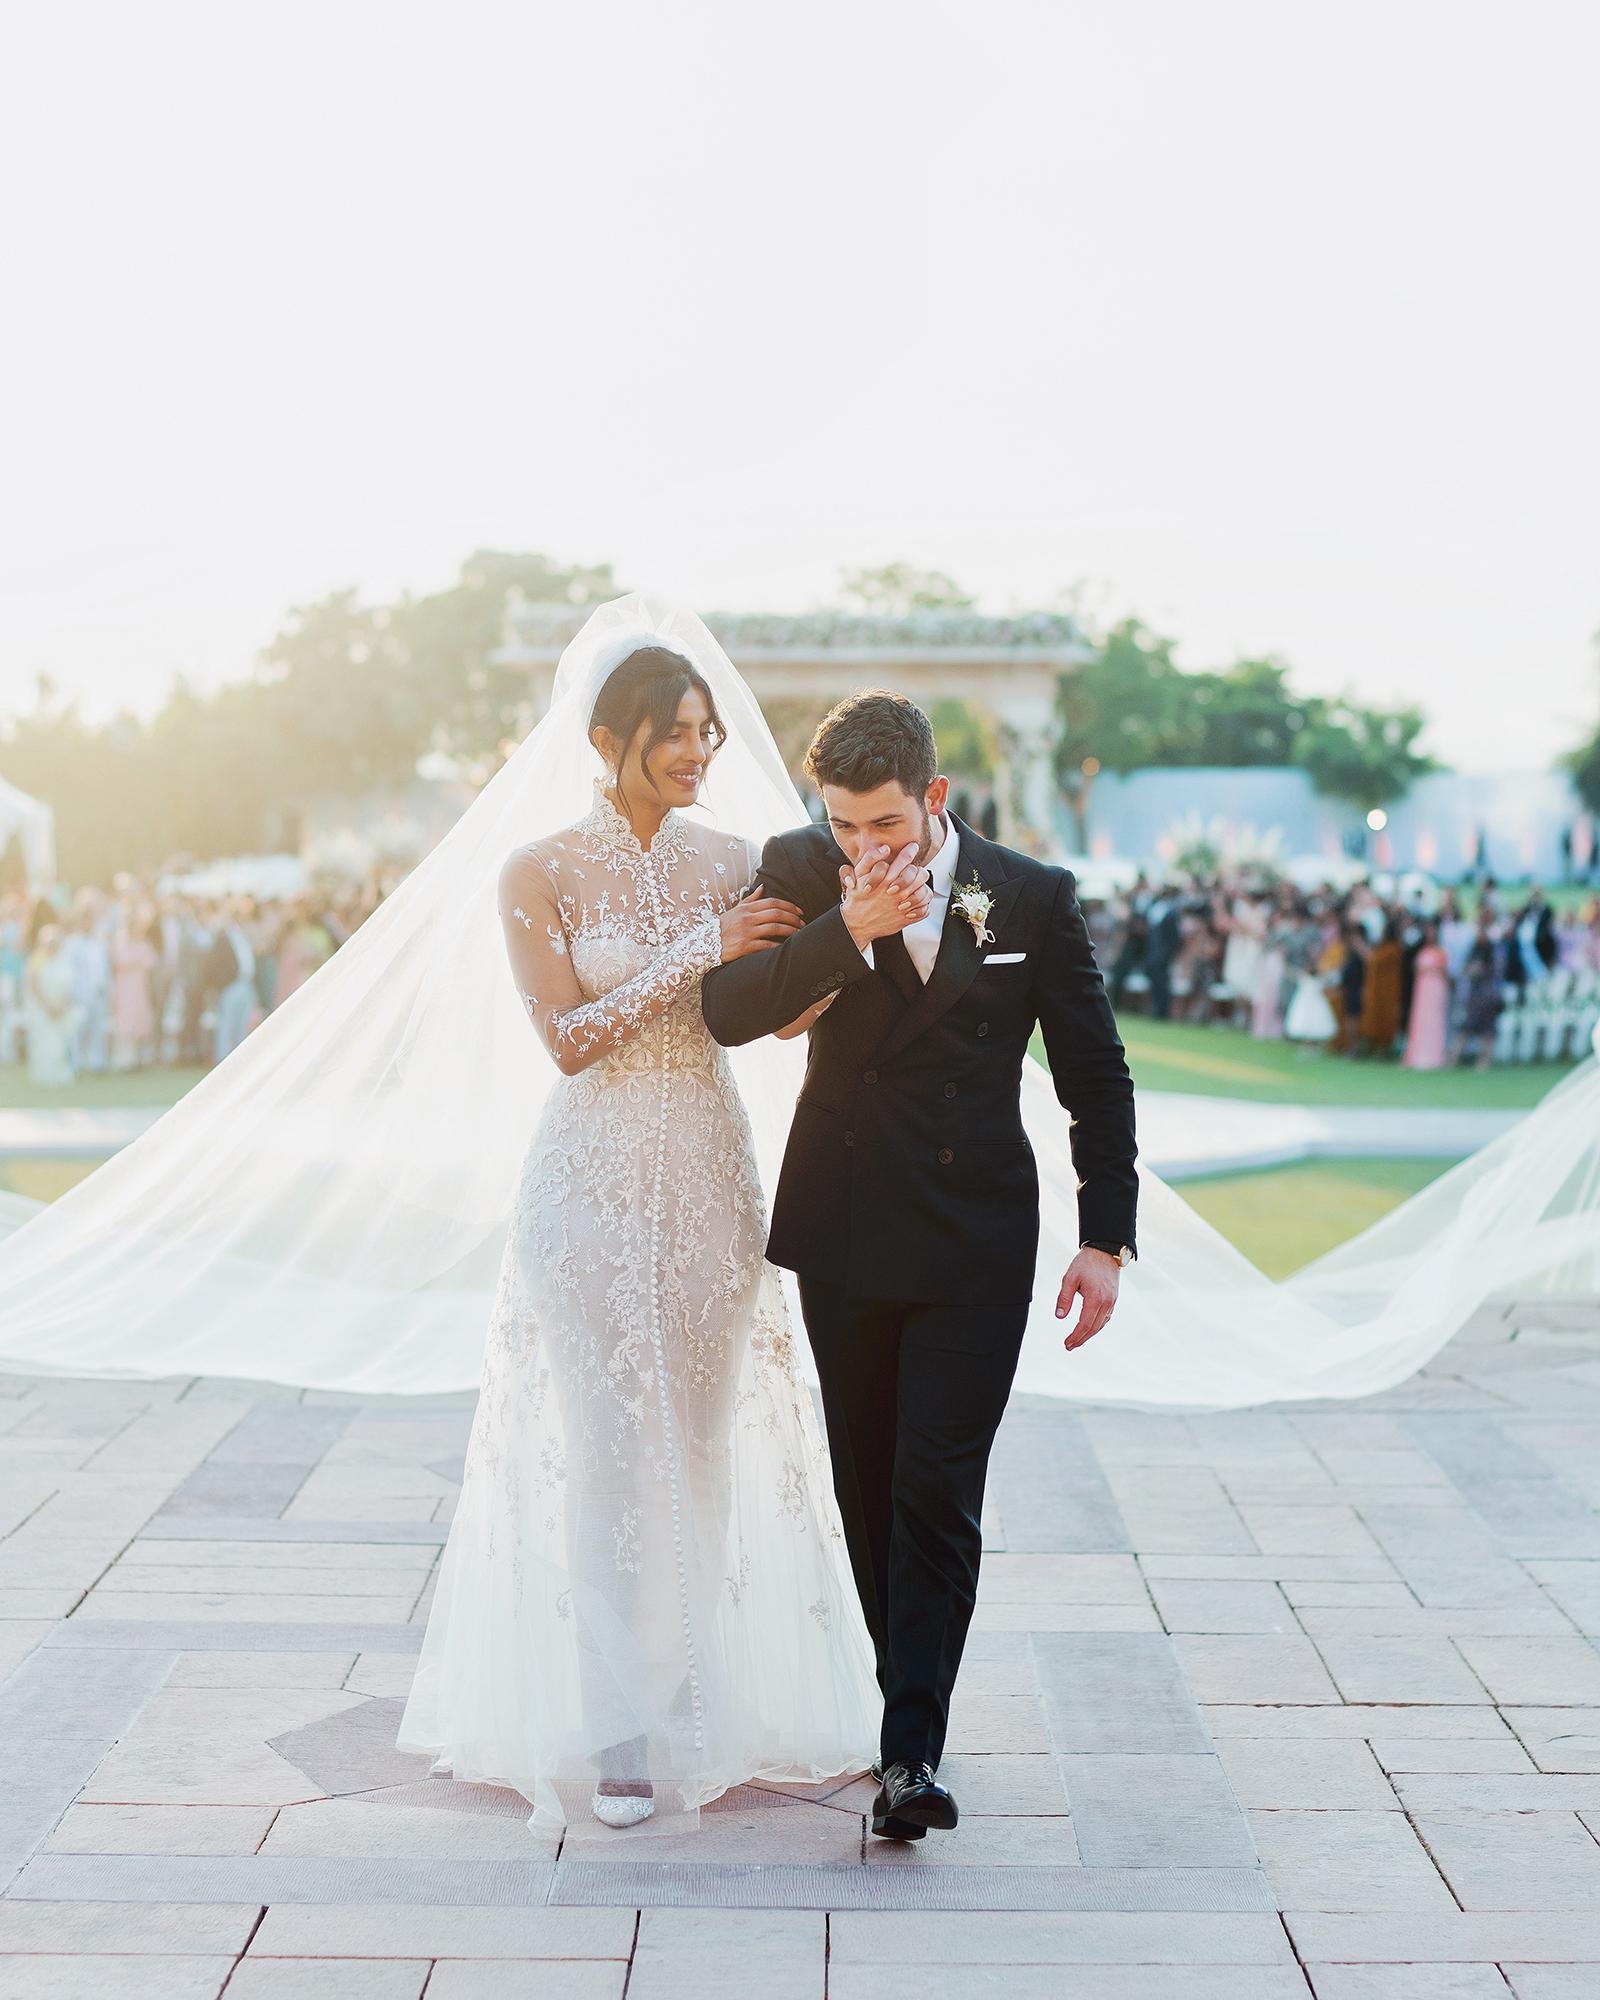 Priyanka Chopra and Nick Jonas Planned Their Extravagant Three-Day Wedding in Just One-and-a-Half Months